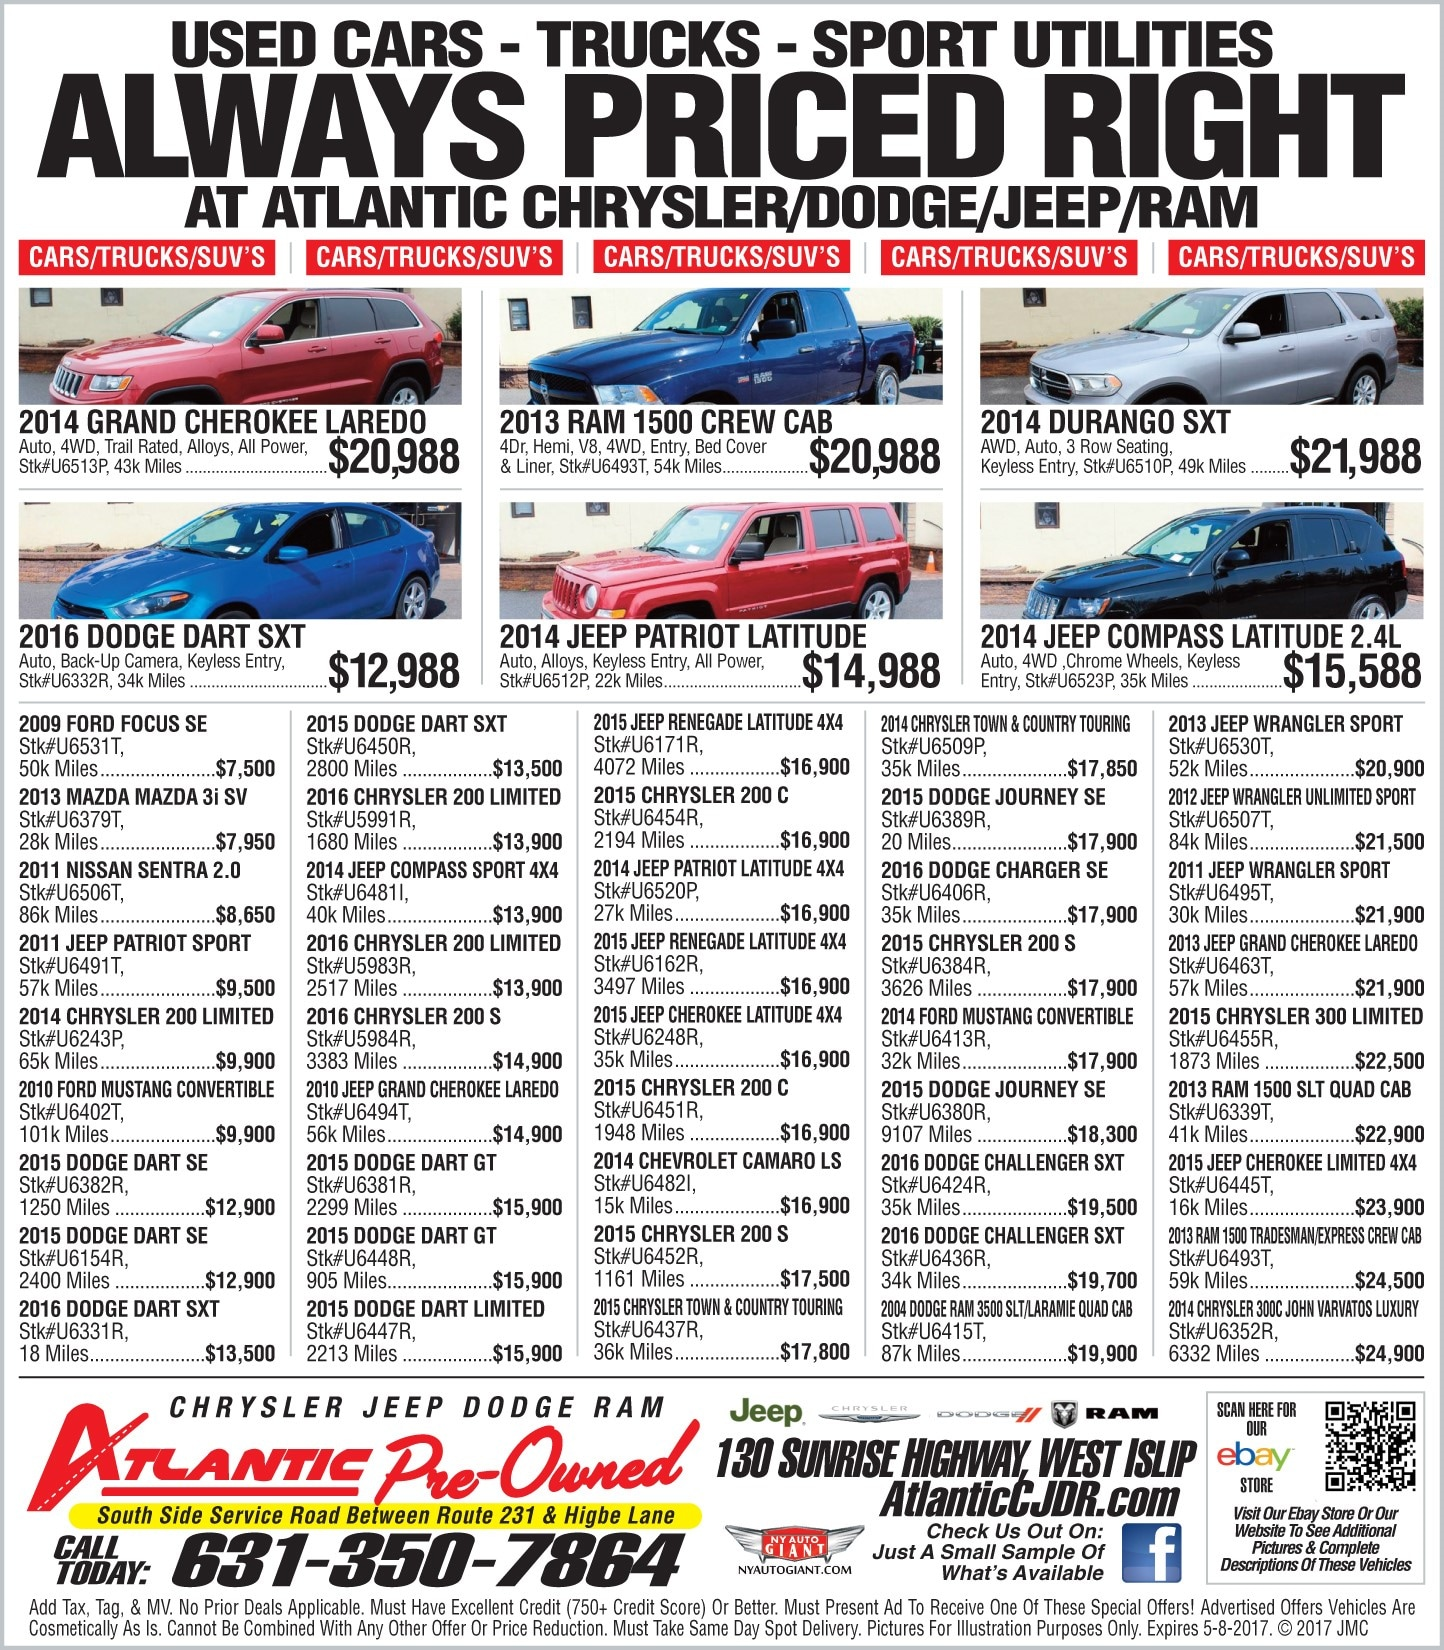 Atlantic chrysler dodge jeep ram - Atlantic Chrysler Jeep Dodge Ram Located At 130 Sunrise Highway West Islip Ny Can Help You Find The Pre Owned Vehicle You Are Looking For